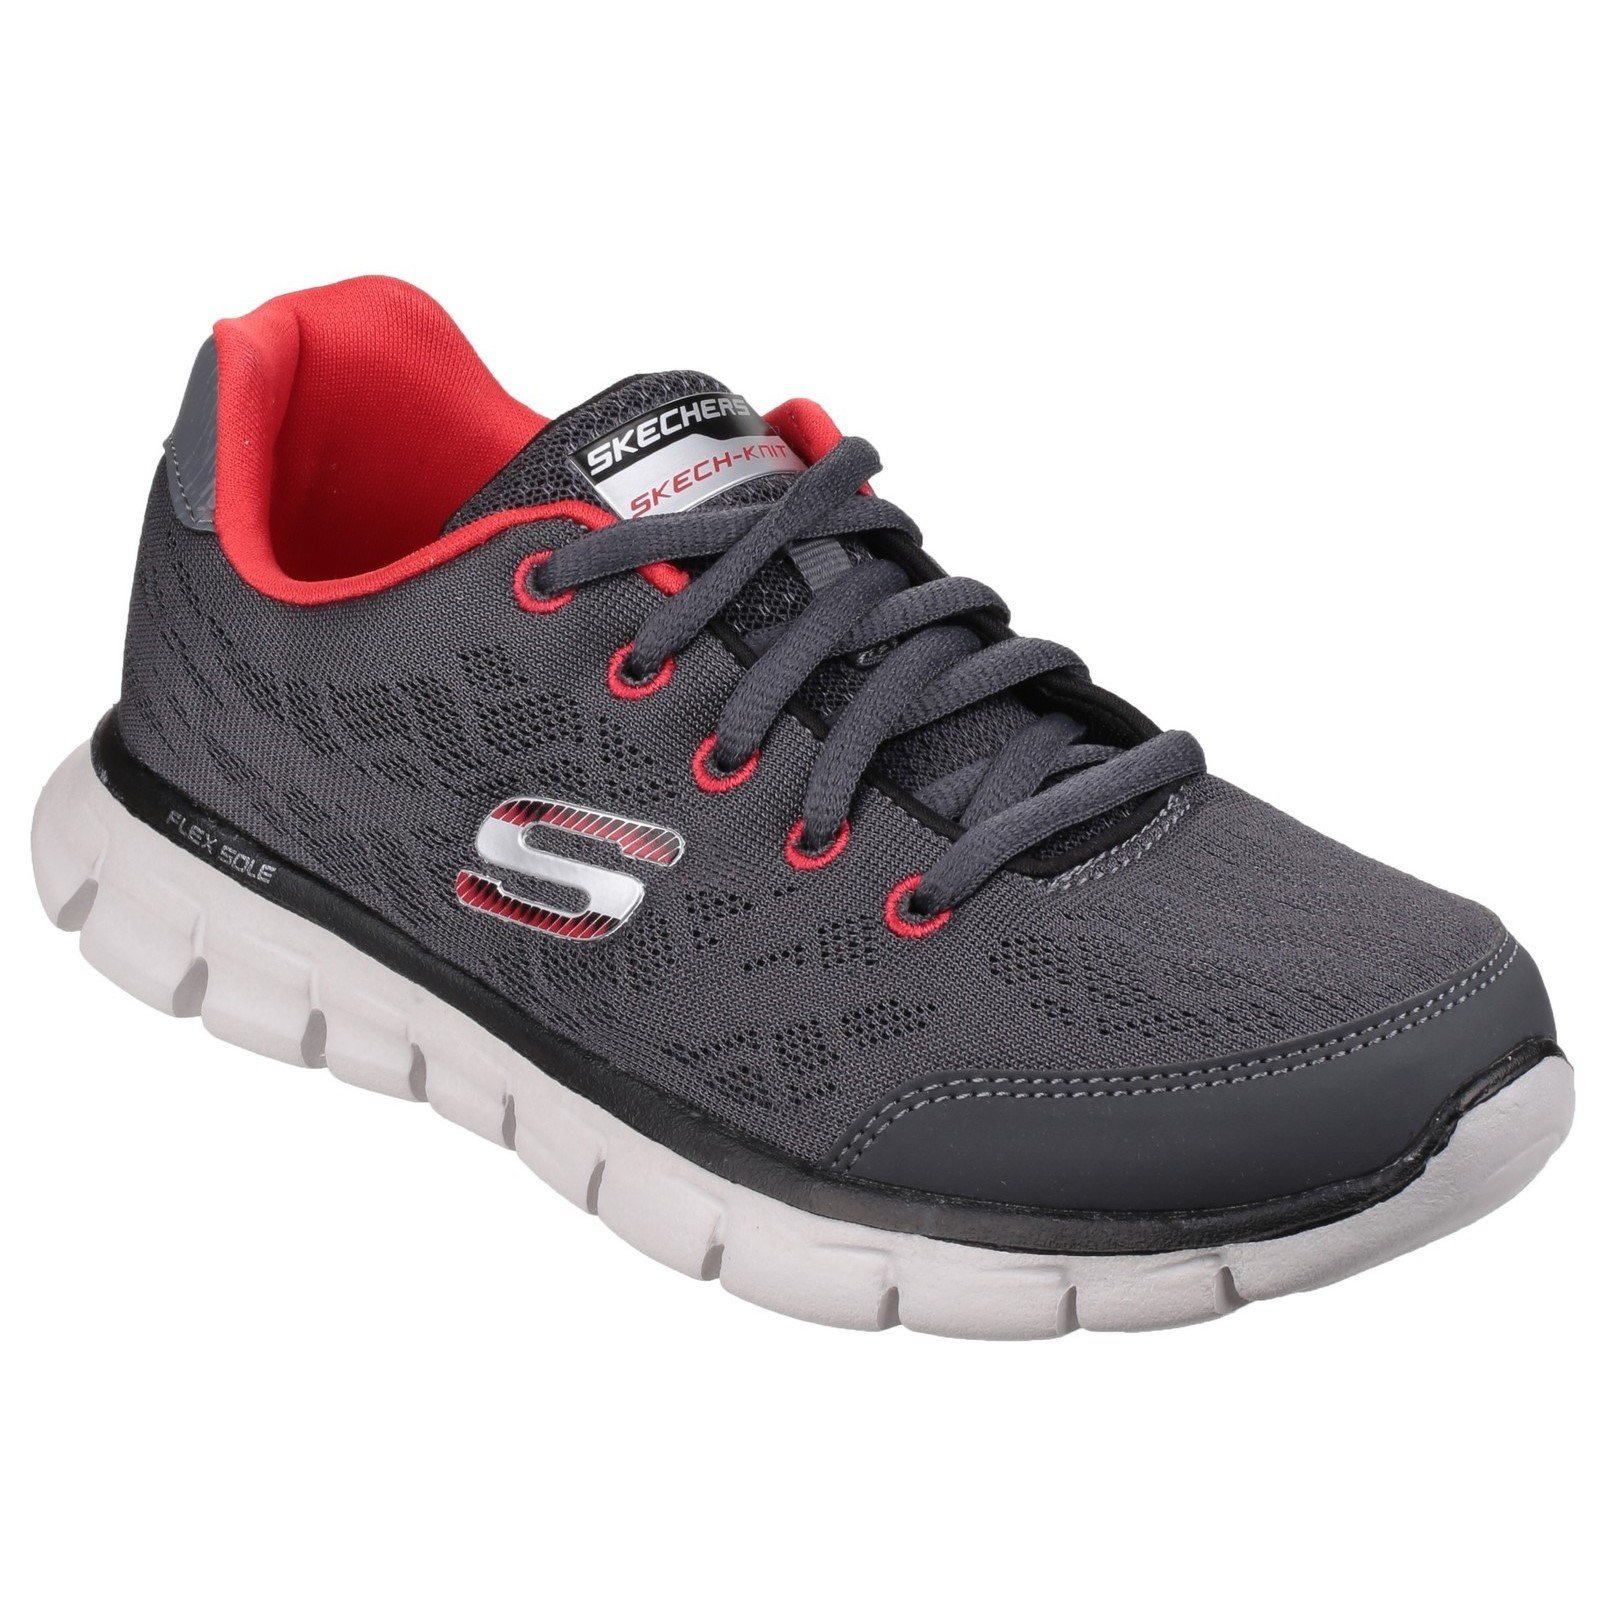 Skechers Kid's Synergy Fine Tune Lace up Trainer Multicolor 23918 - Grey/Red 1.5